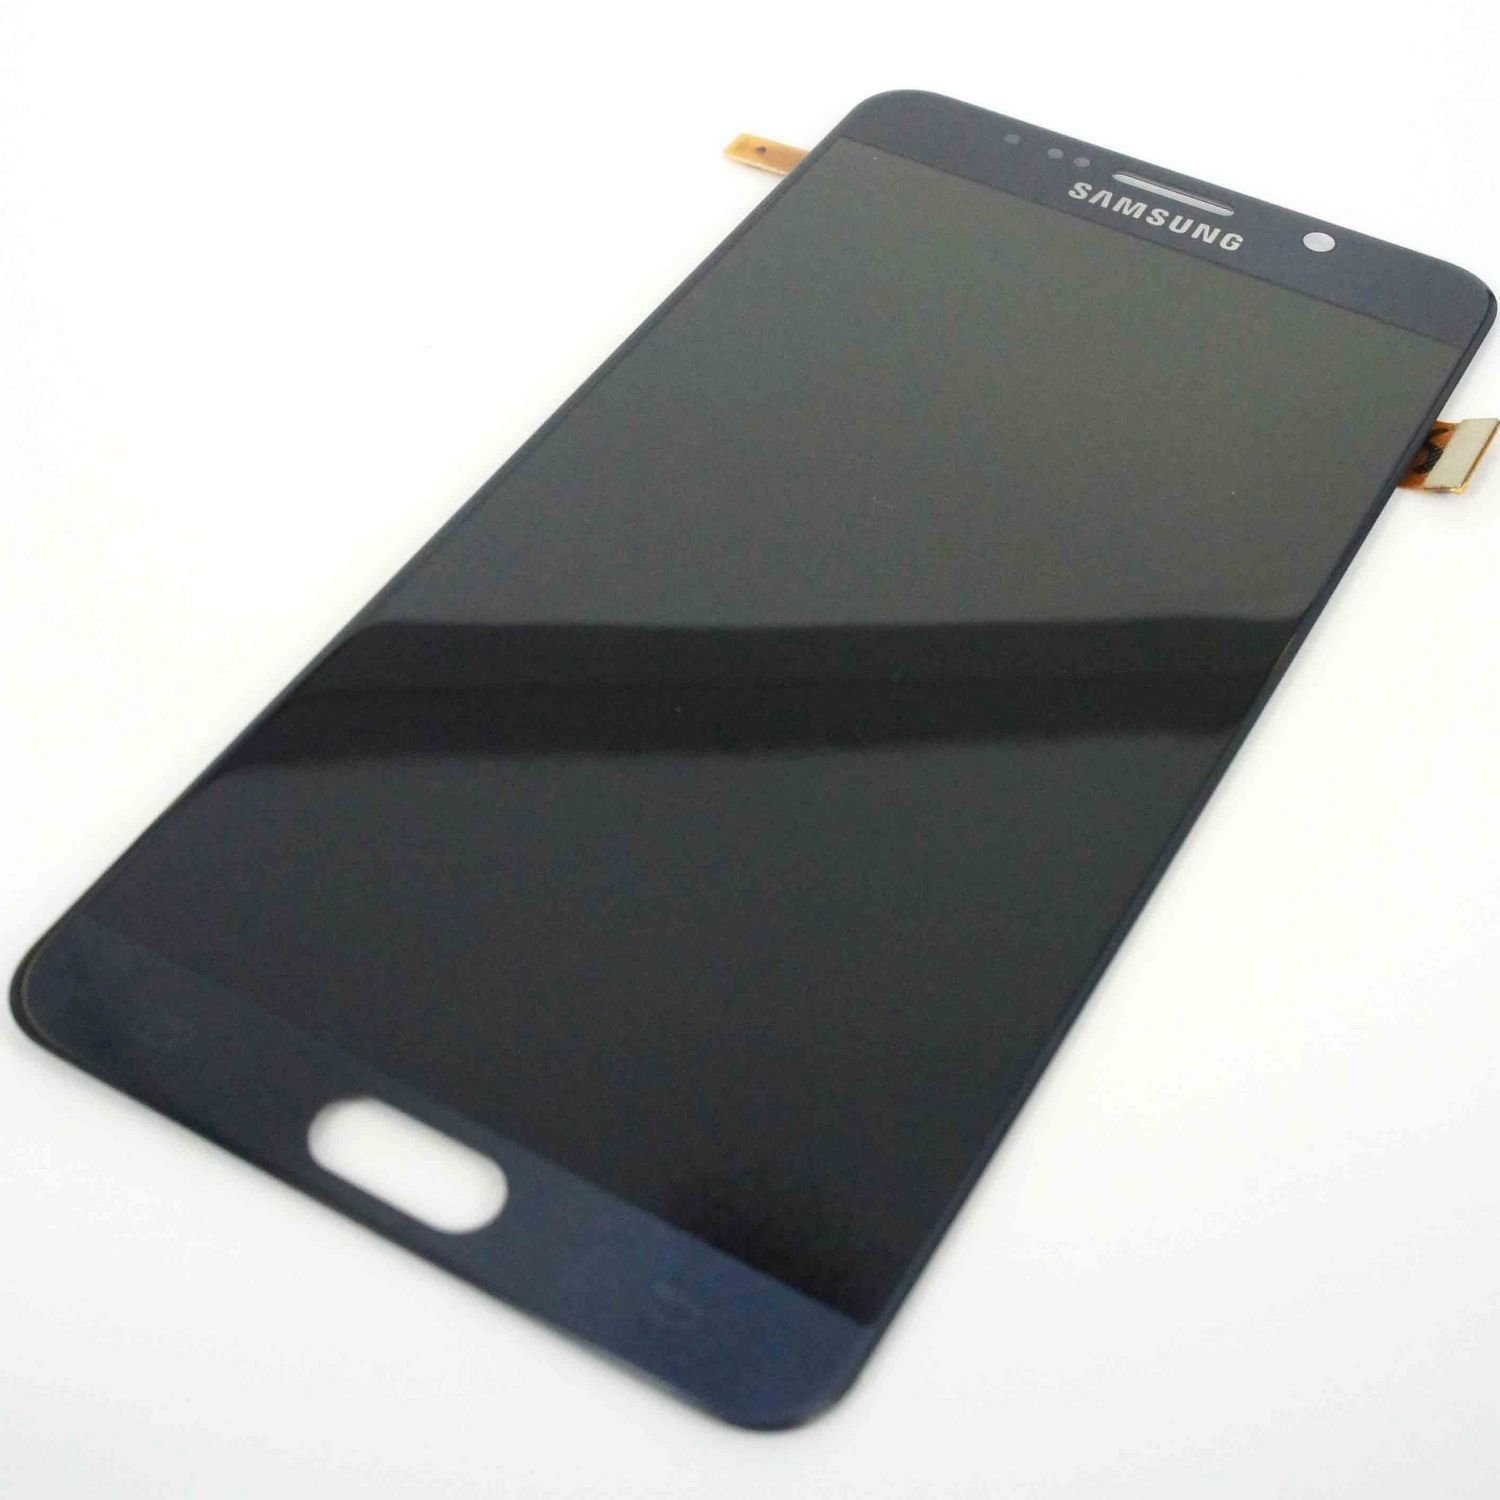 Samsung Galaxy Note 5 N920V N920P N920R4 N920W LCD Screen Digitizer Touch Screen